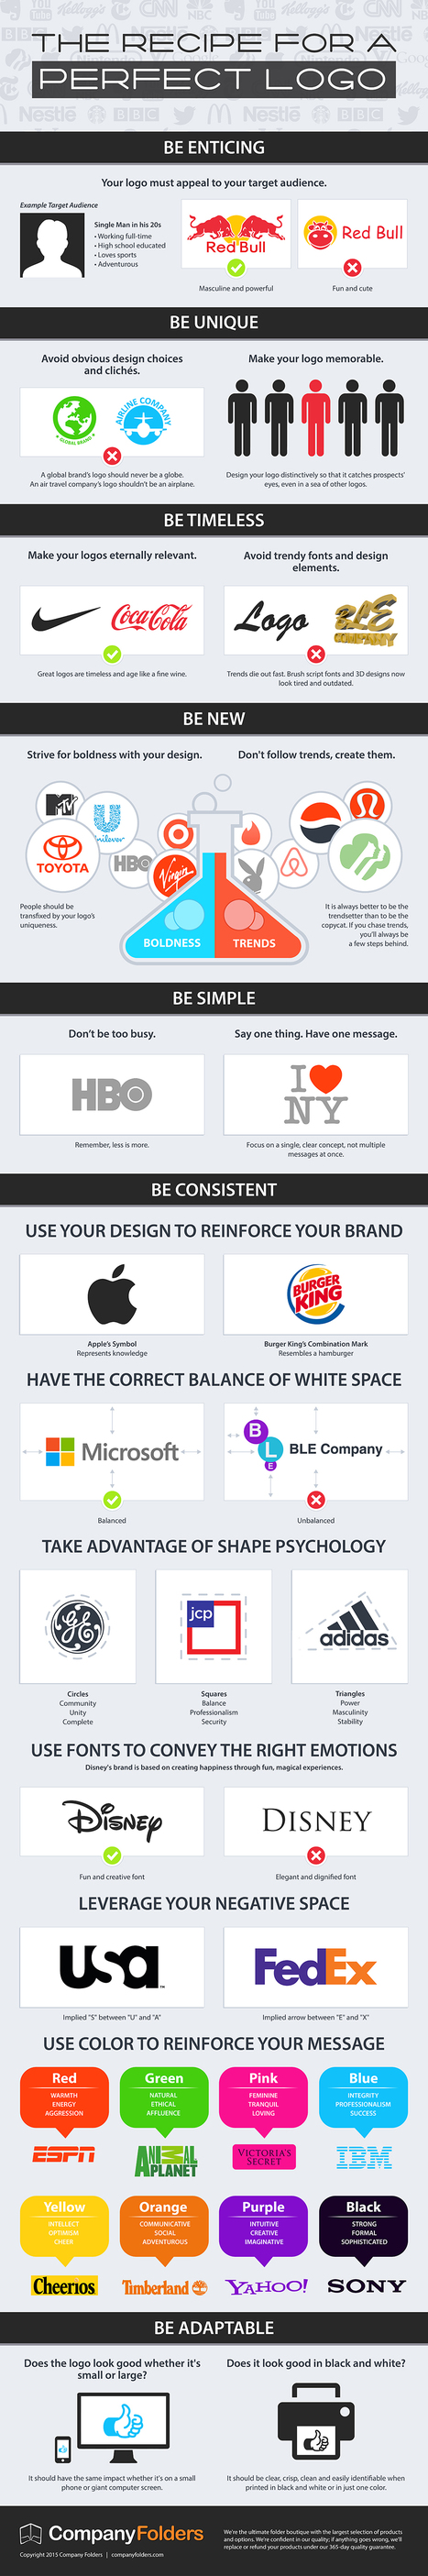 How To Design The Perfect Business Logo [Infograhic] | AdJourney - Marketing & Advertising Journey | Scoop.it